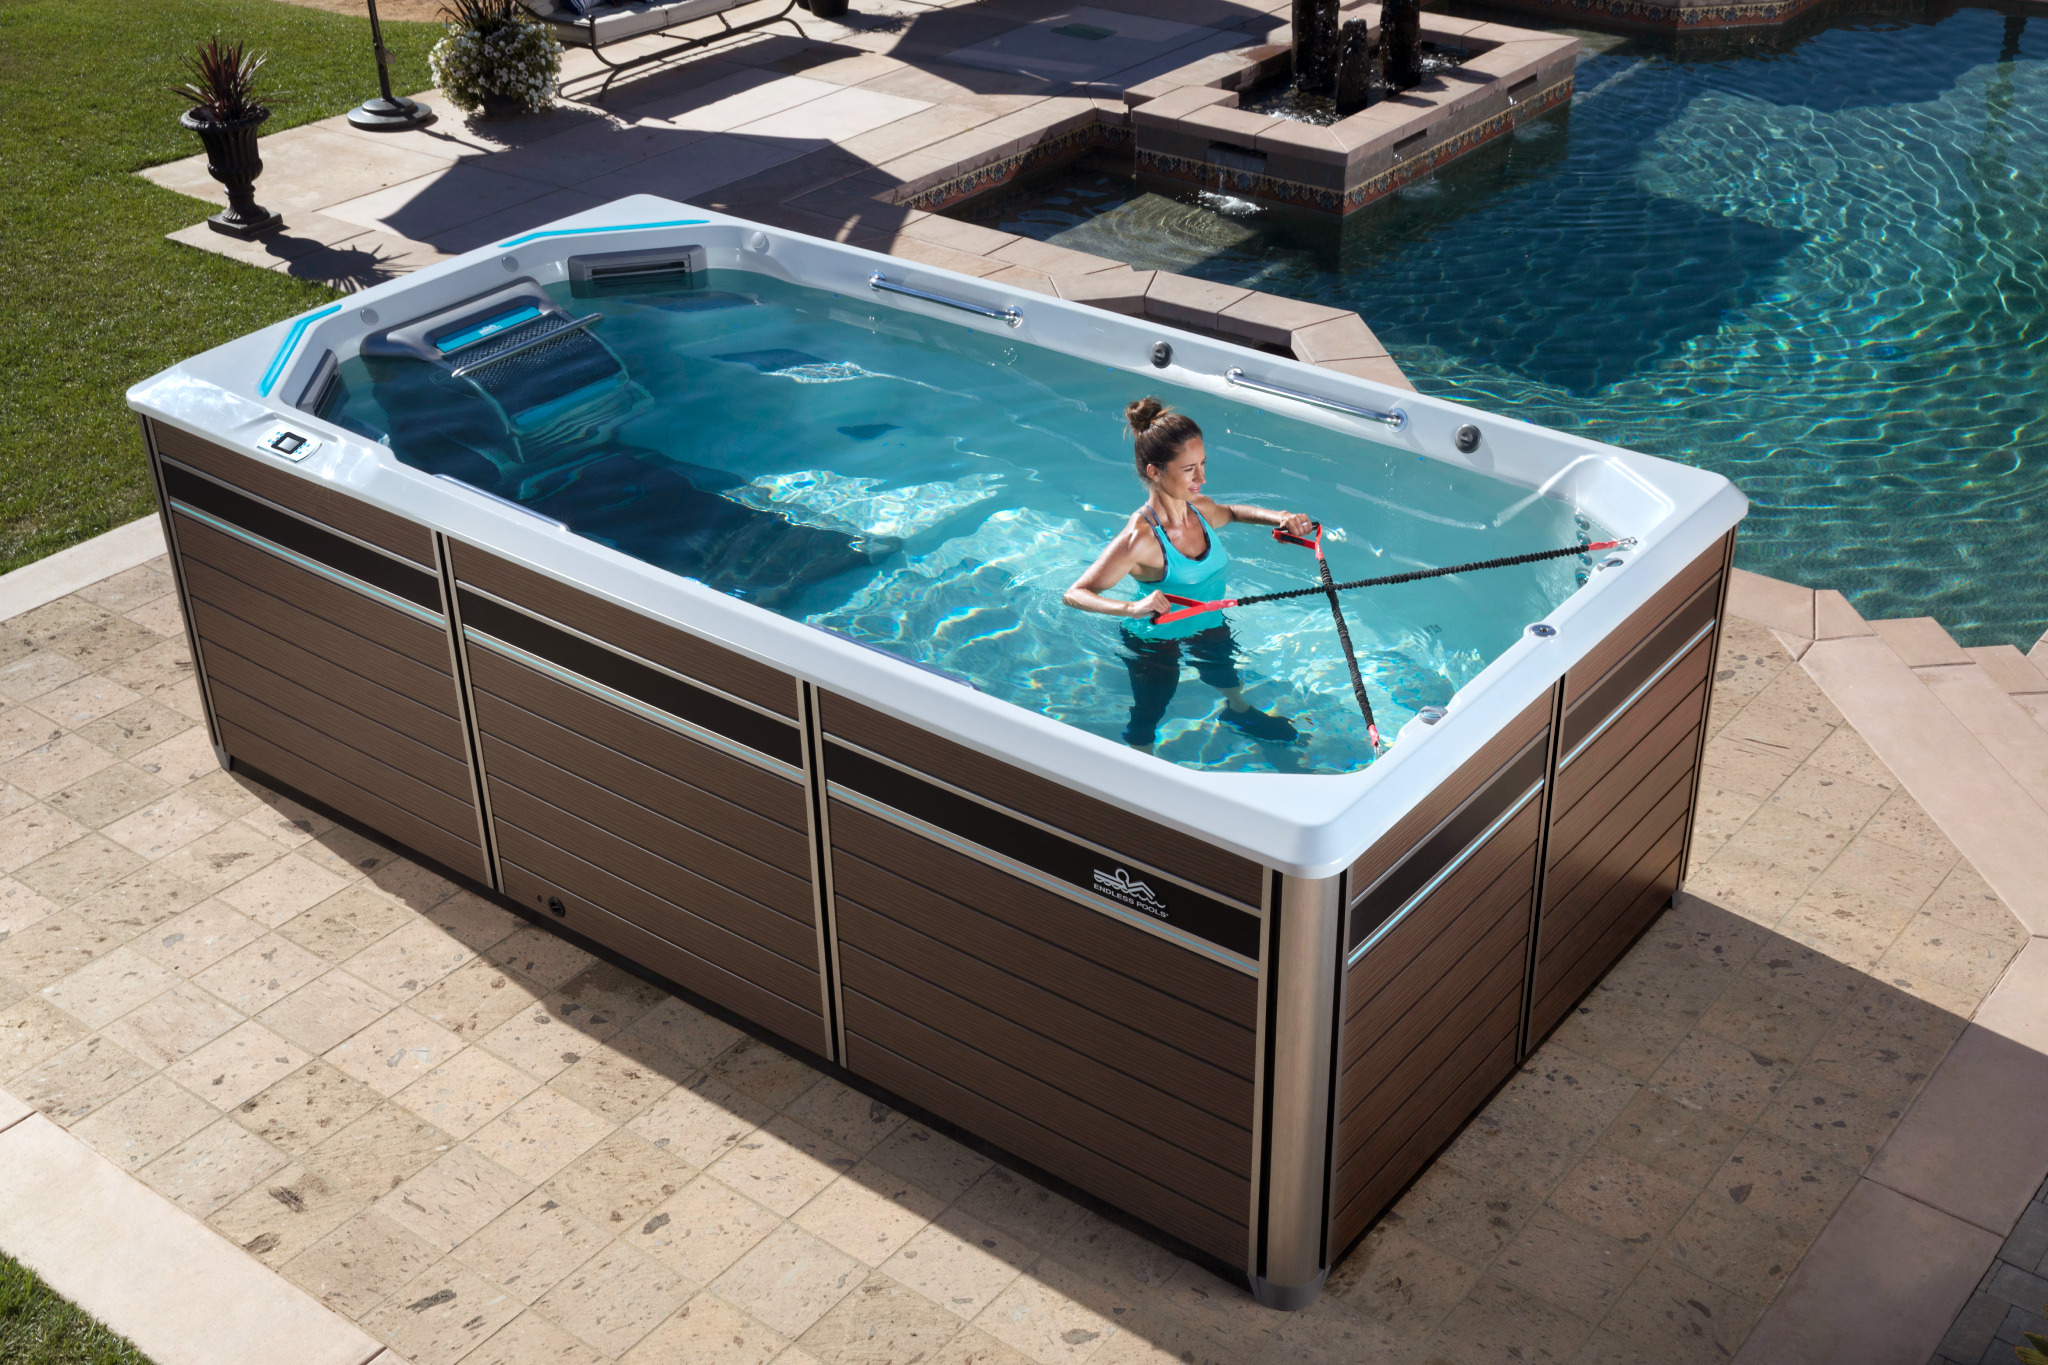 The Combined Benefits of Exercise and Recovery with a Swim Spa